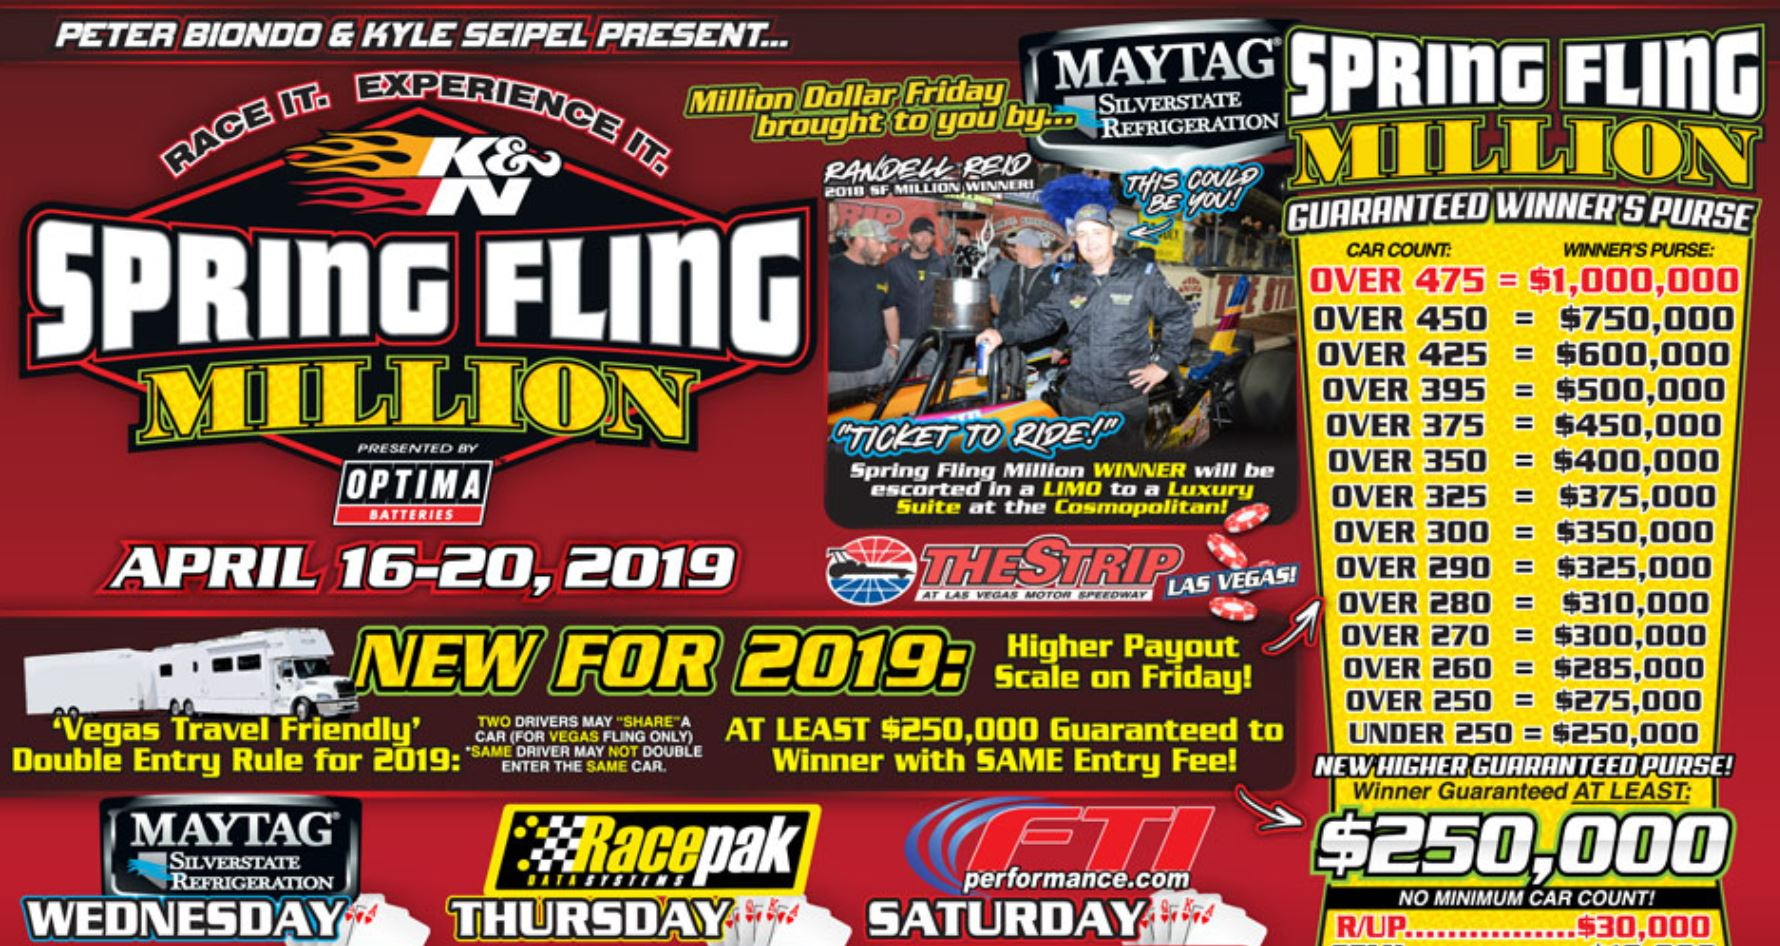 FREE LIVE STREAMING VIDEO: The Spring Fling Million Dollar Race Coverage Is LIVE Right Here!